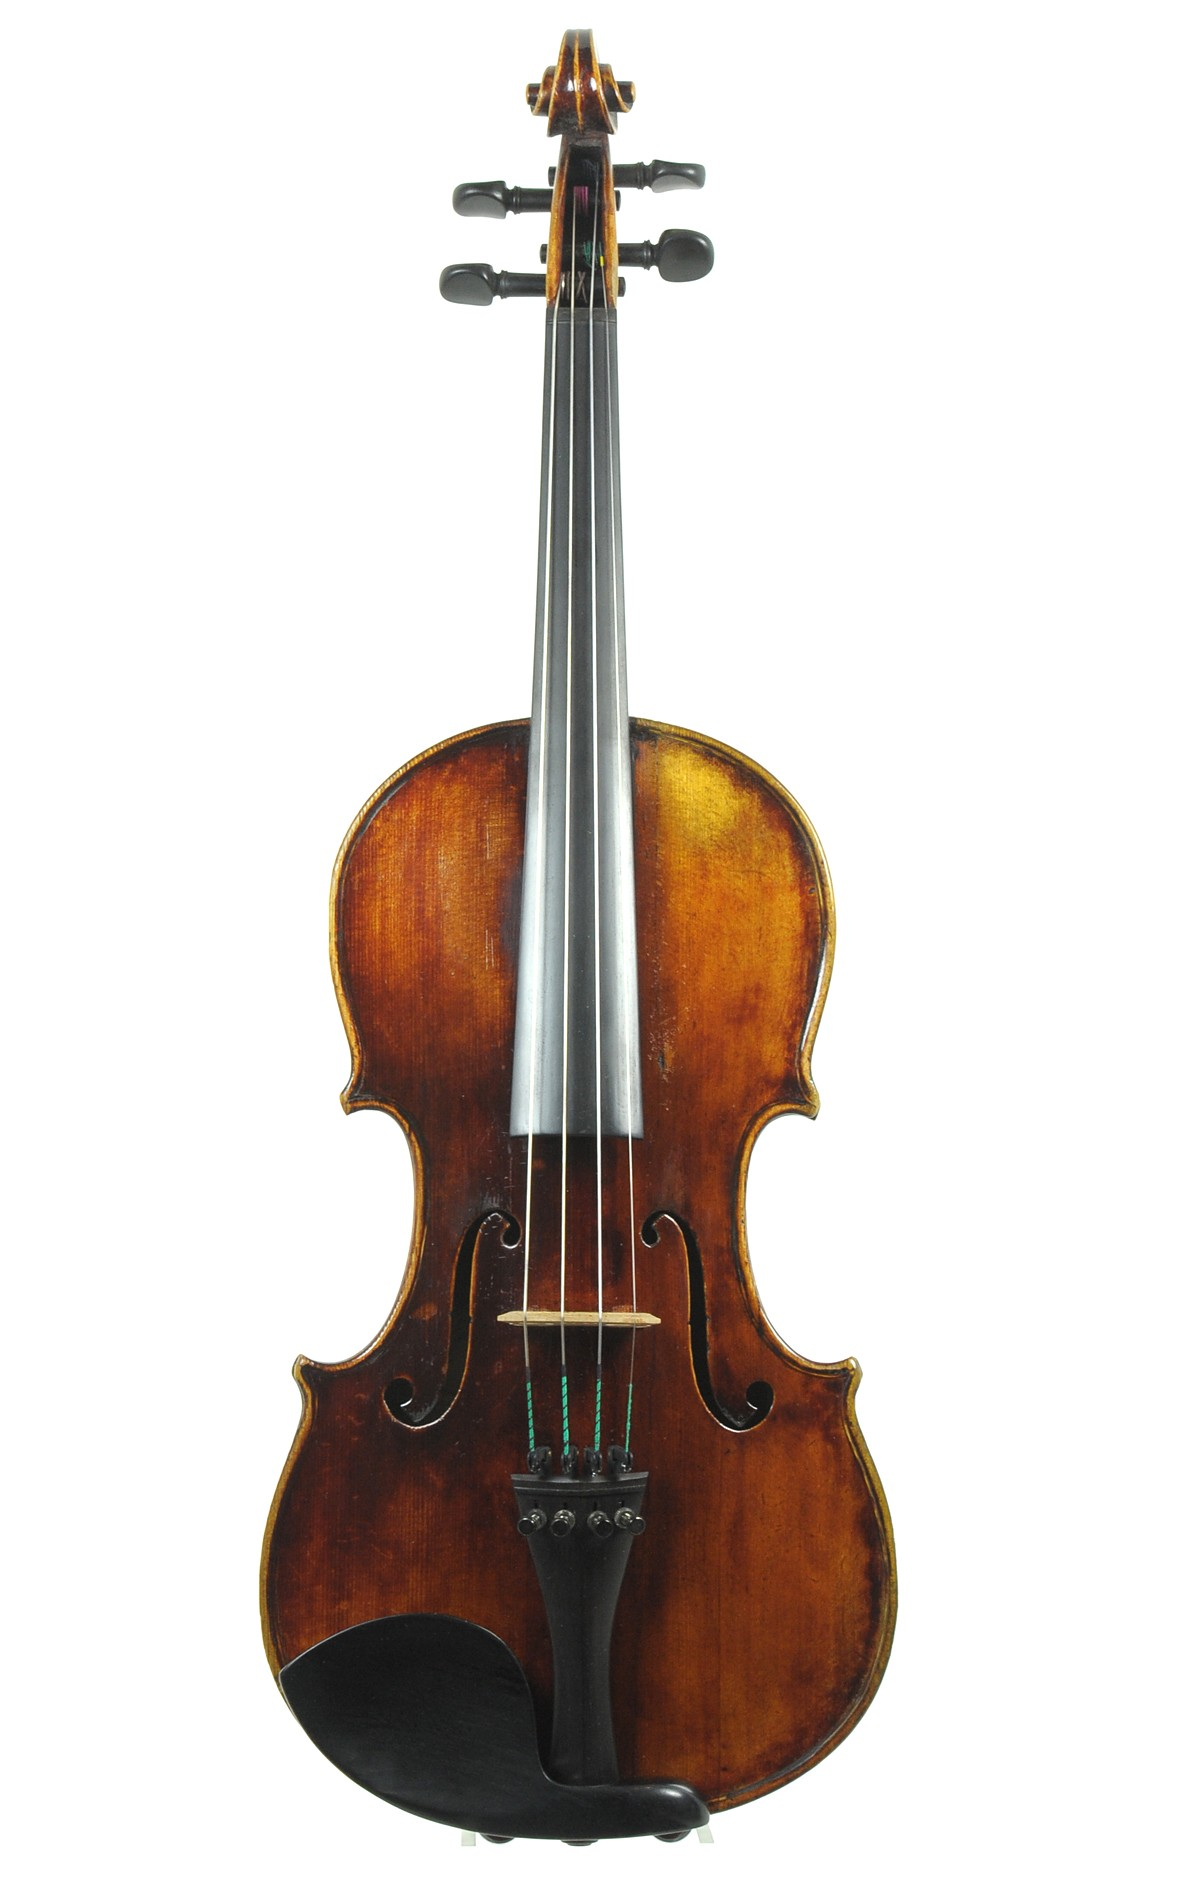 Violin by Simon Kriner, Mittenwald, 1820 - top